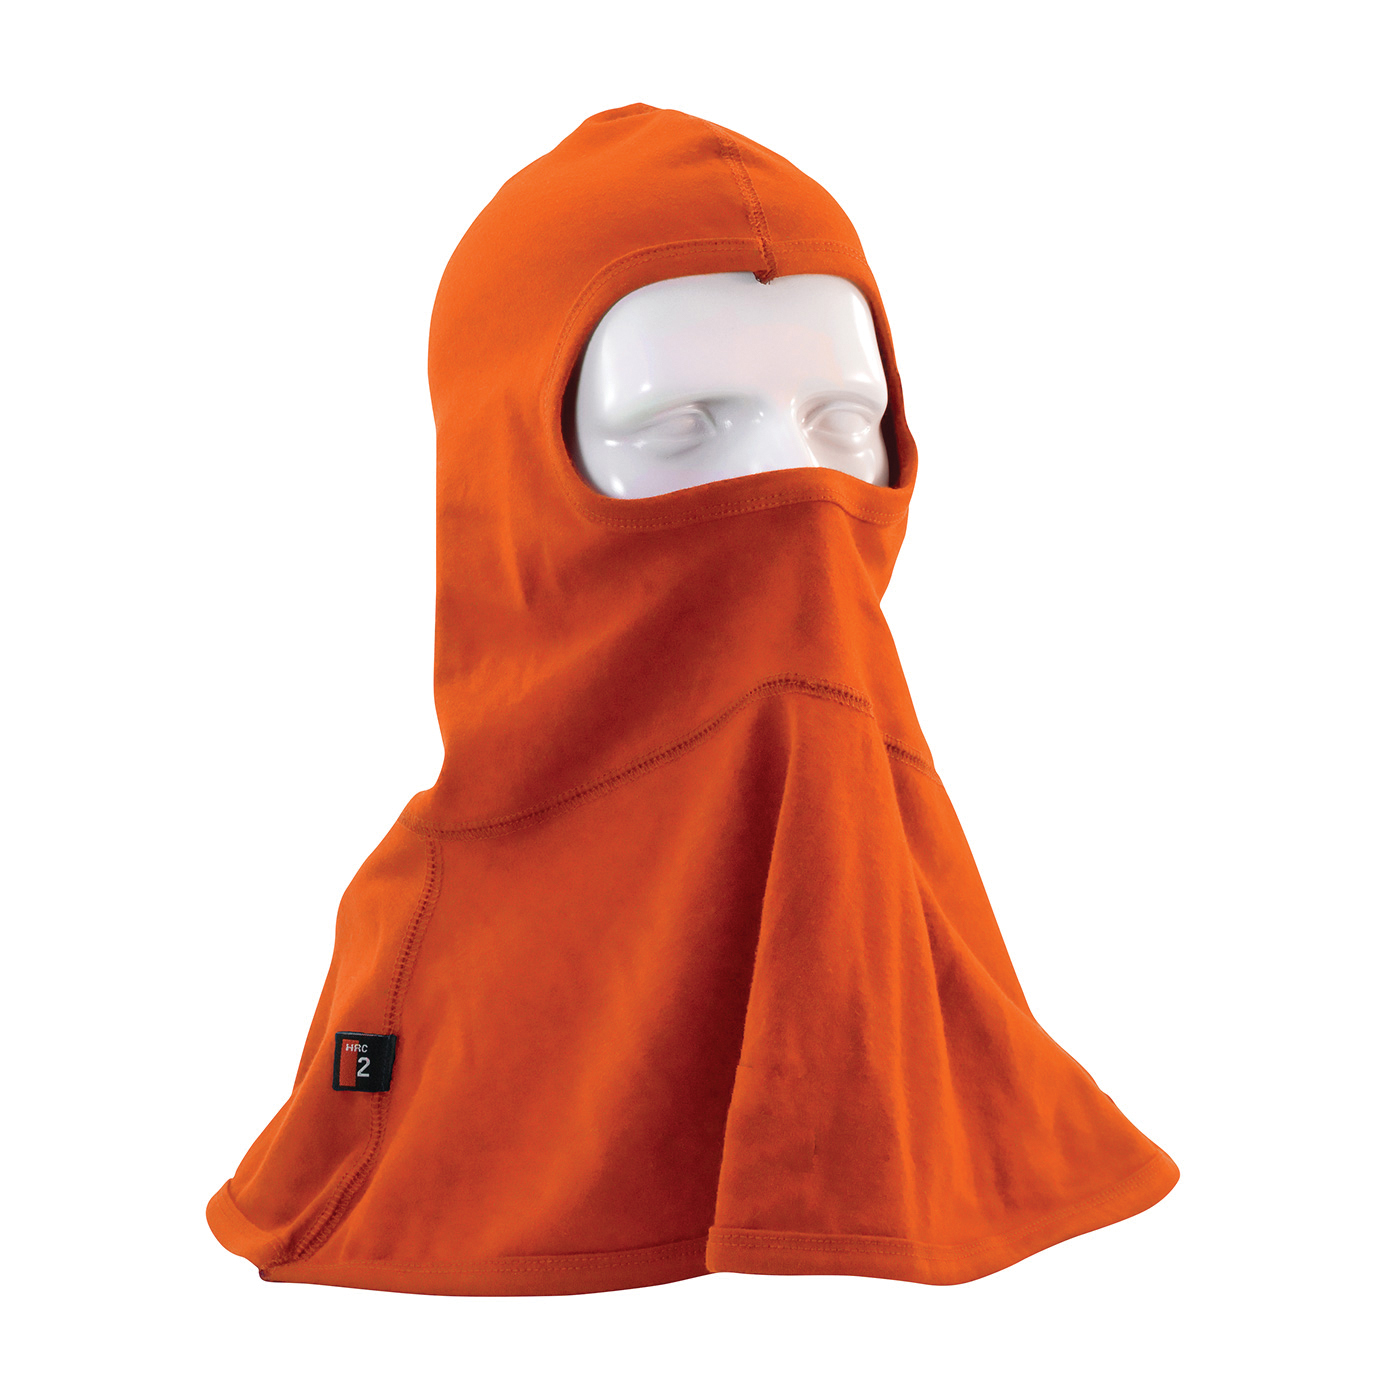 PIP® 385-FRBL11-OR Single Layer Arc and Flame Resistant Balaclava, Universal, Orange, 17-1/4 in L, Interlock Cotton Knit, 6.5 oz Fabric, Full Face Closure